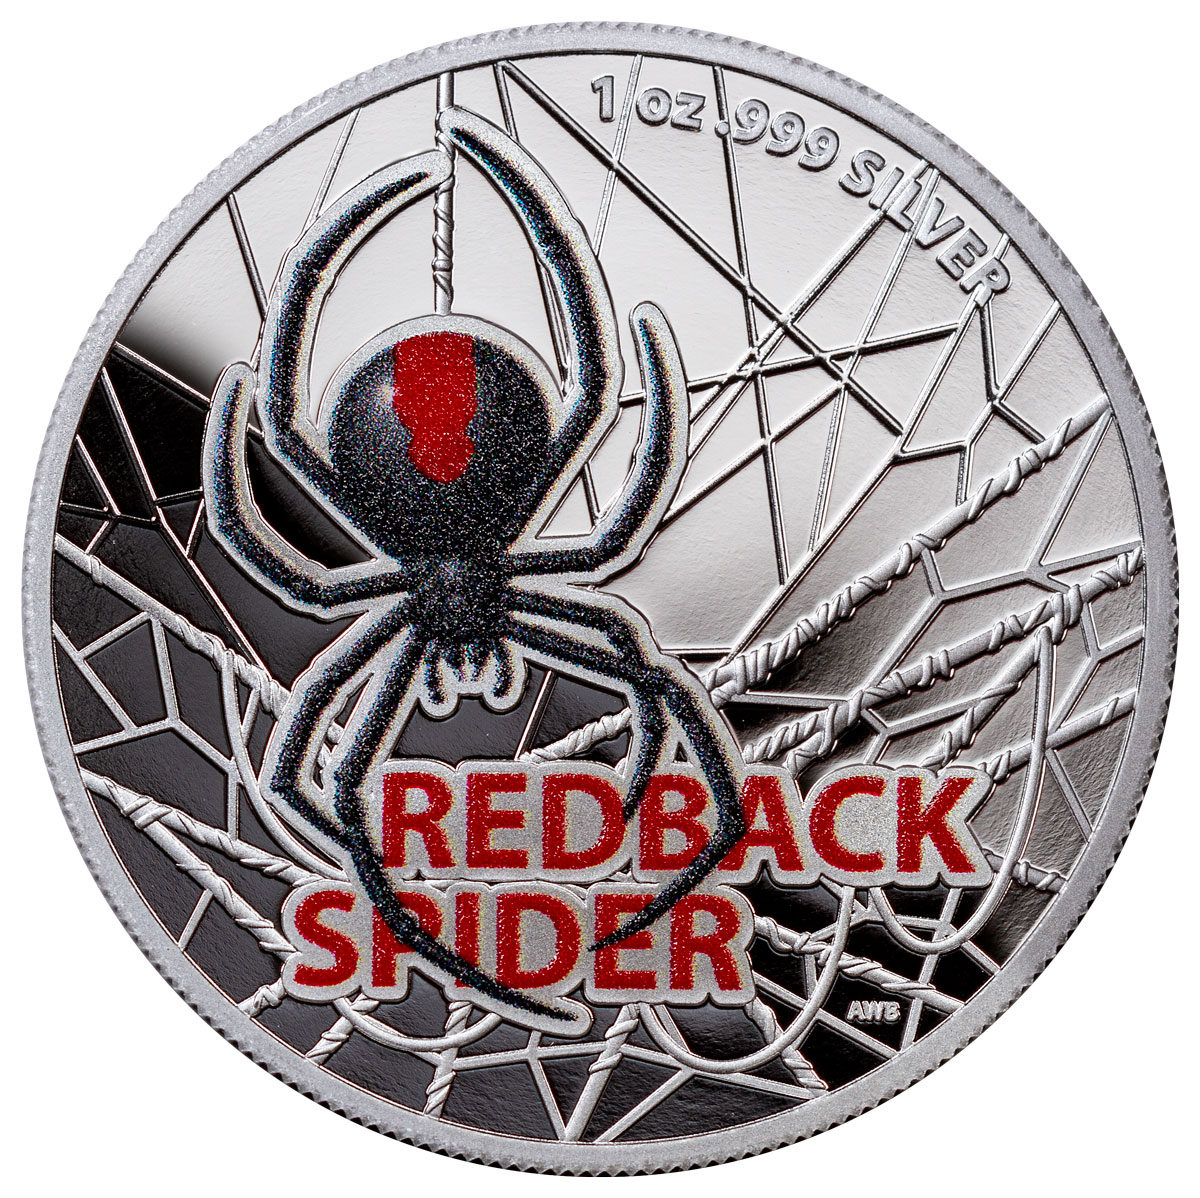 2021 Australia Redback Spider 1 oz Silver Colorized Proof $5 Coin GEM Proof